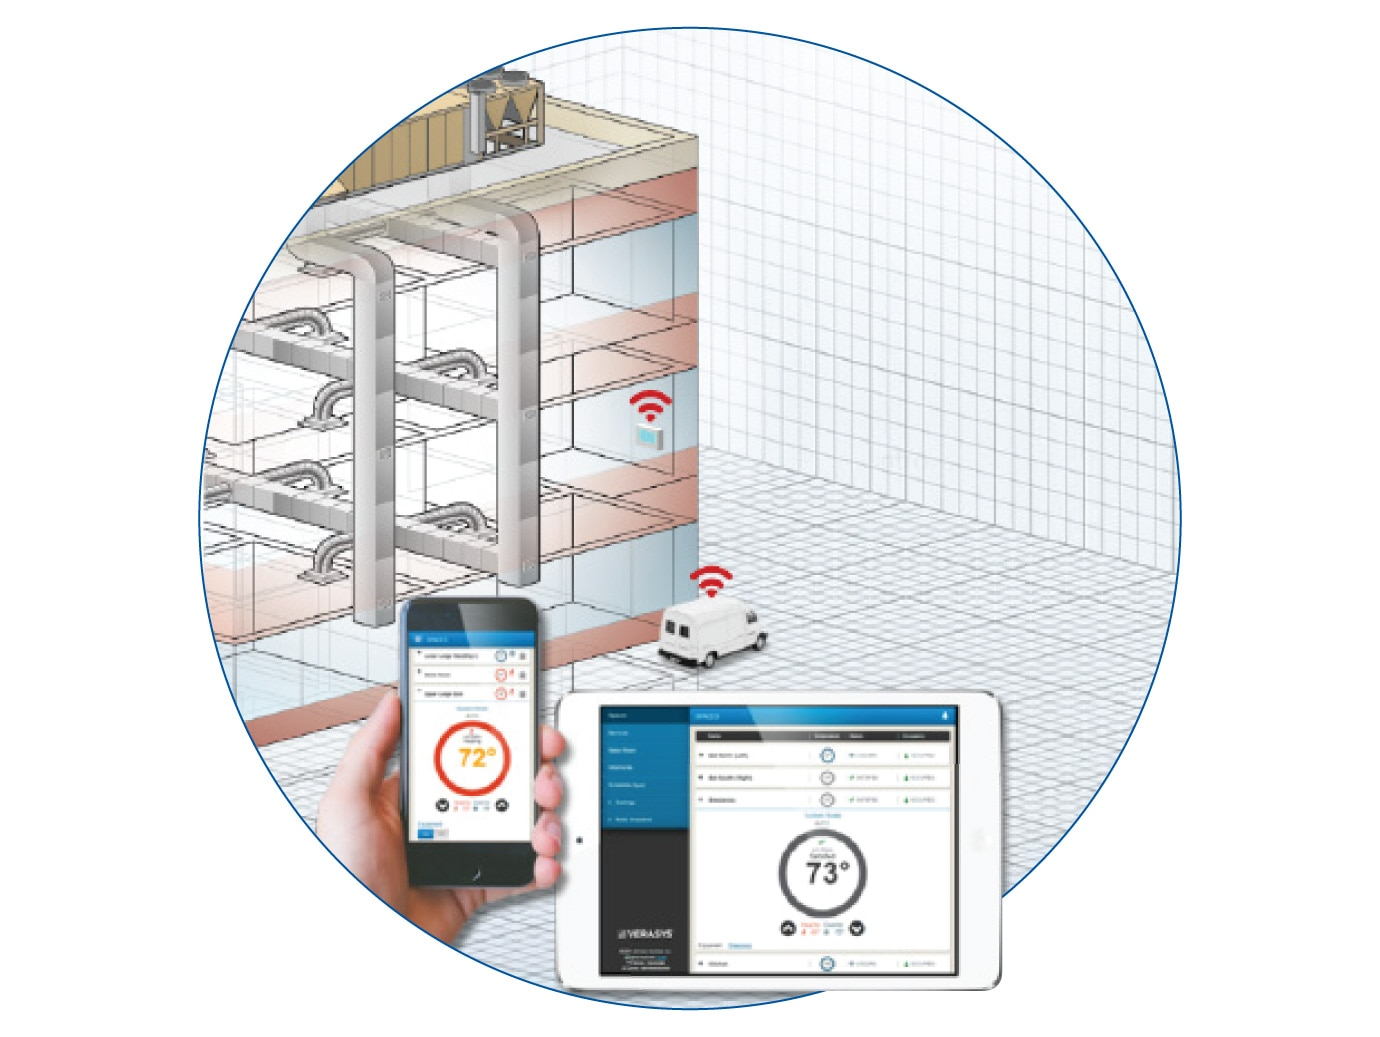 A Mobile Access Portal (MAP) gateway providing access to a YORK packaged rooftop unit via a smart device.